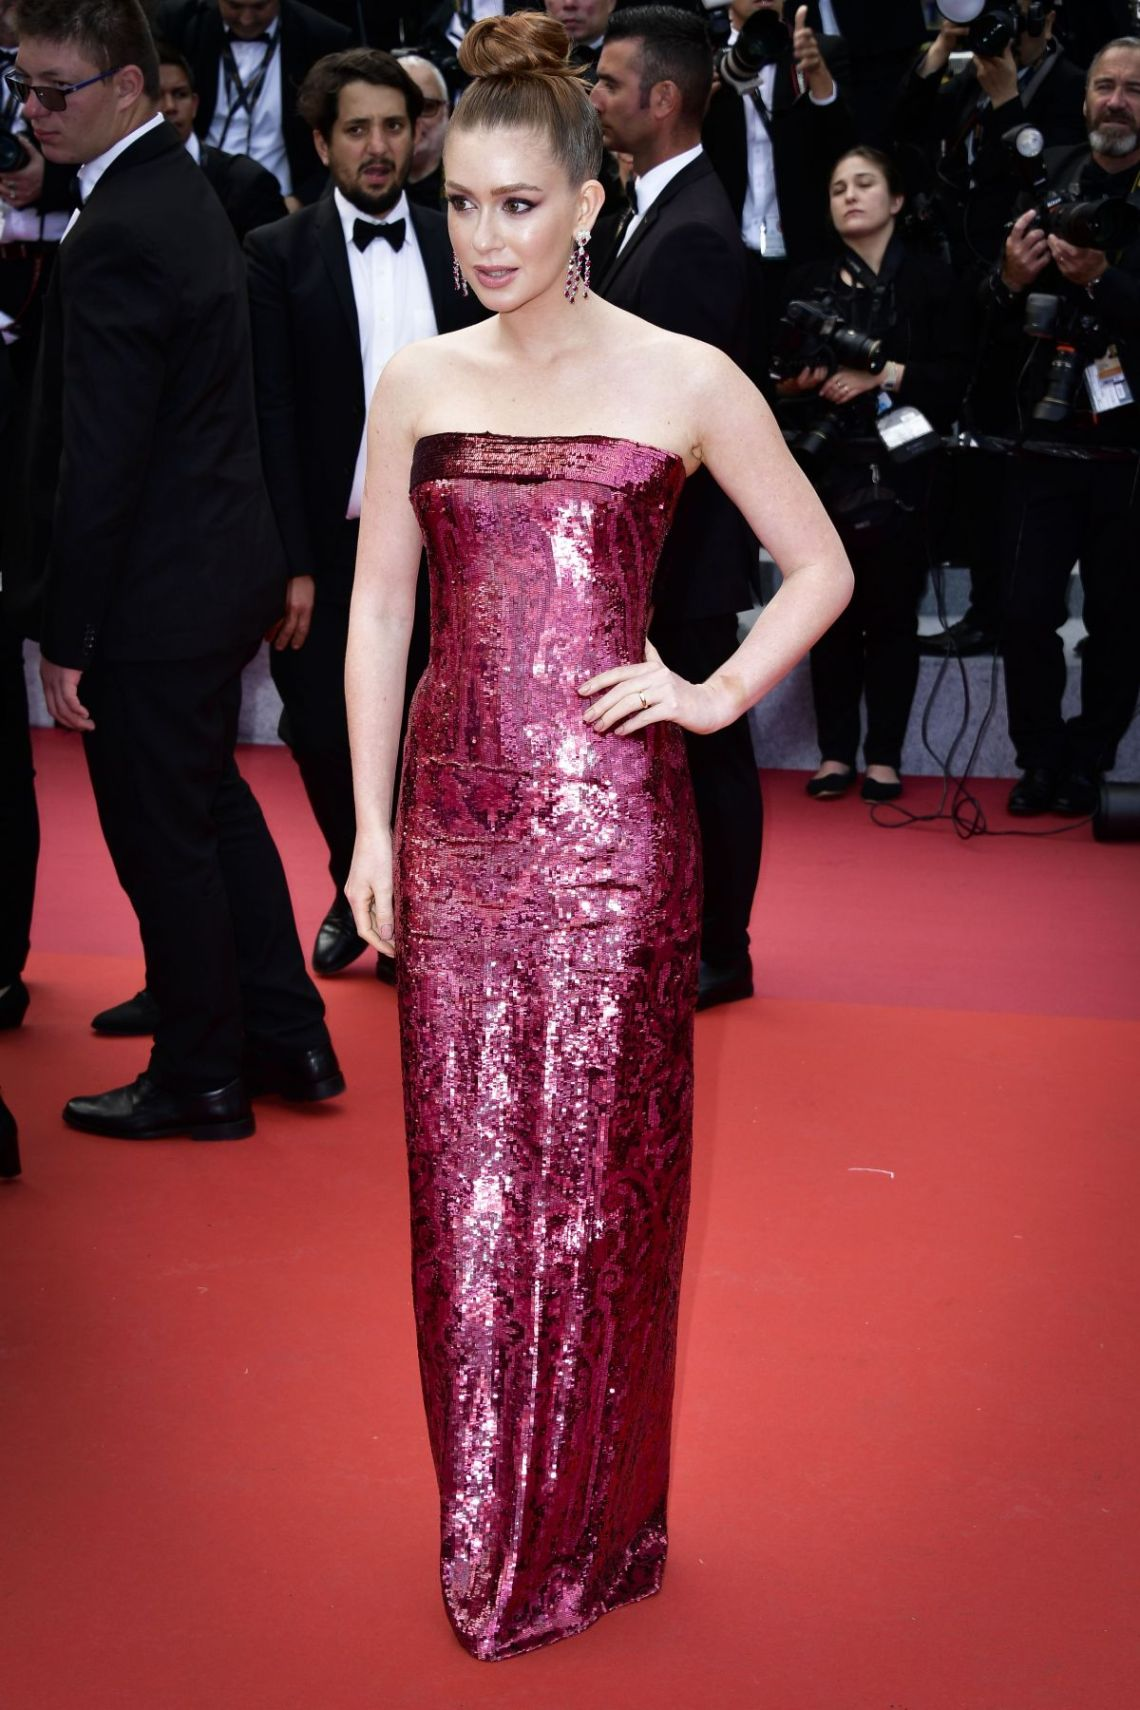 marina-ruy-barbosa-at-oh-mercy-premiere-at-2019-cannes-film-festival-05-22-2019-5etro